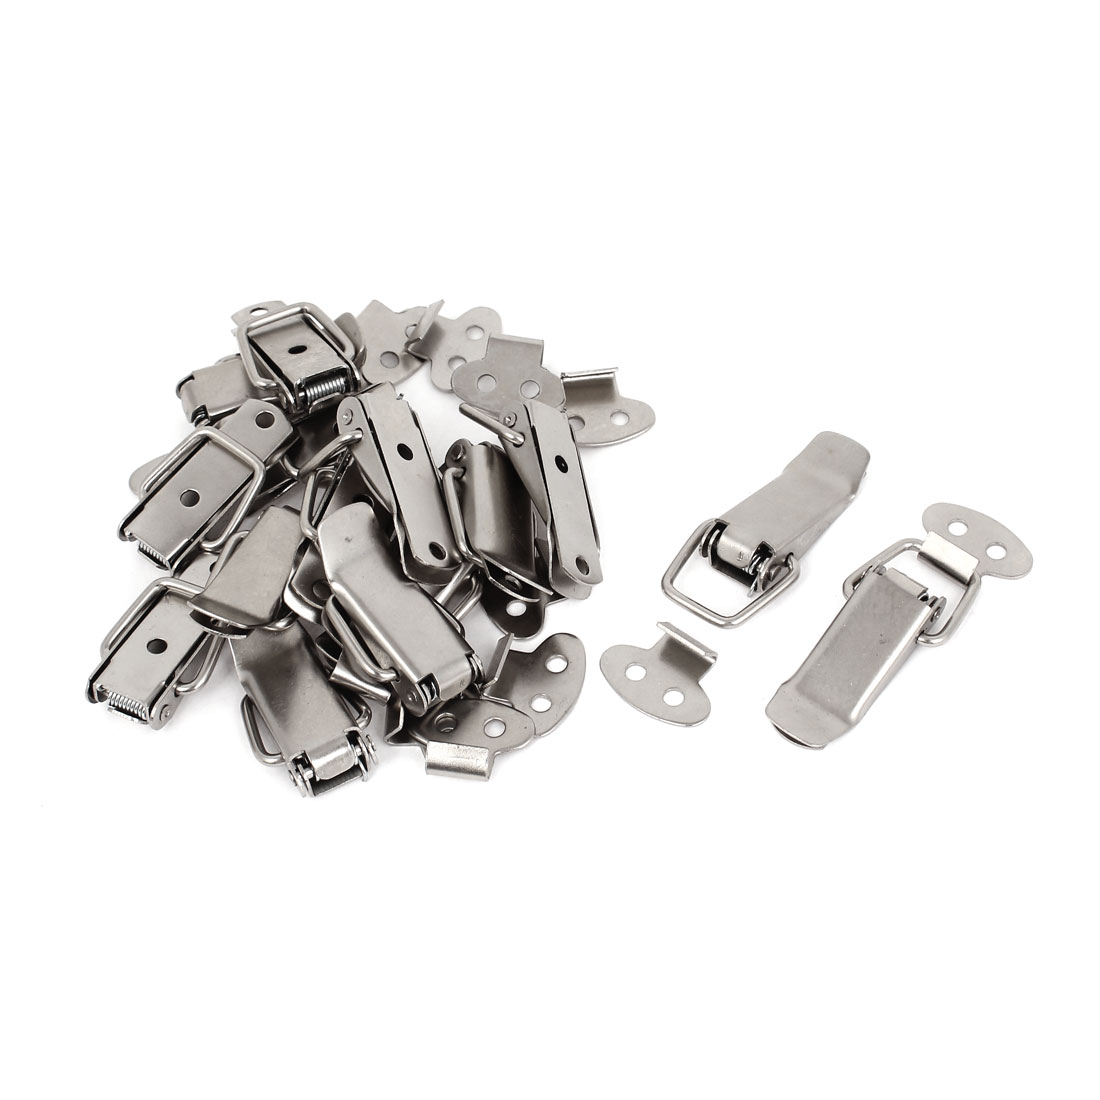 Case Box Stainless Steel Spring Loaded Draw Toggle Latch Clamp Clip Set 15pcs